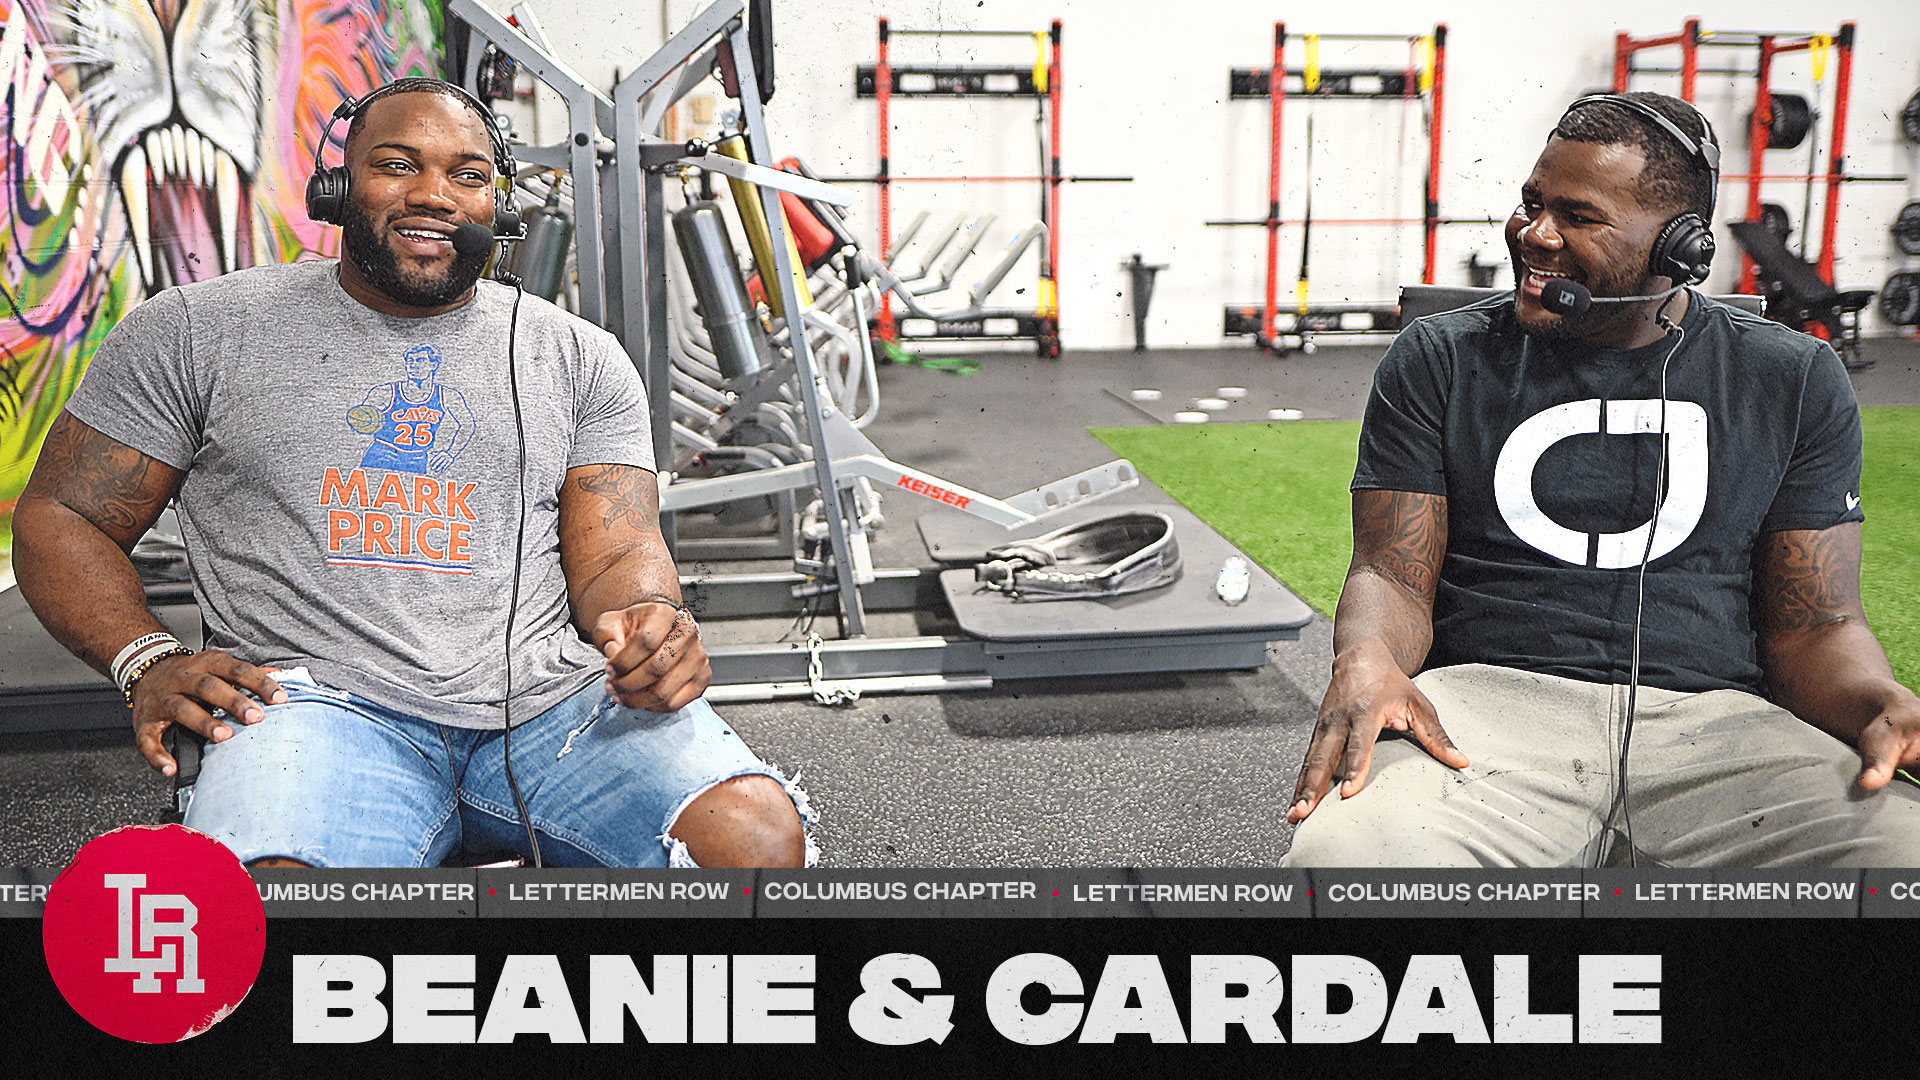 Cardale-and-Beanie-featured-nov-6